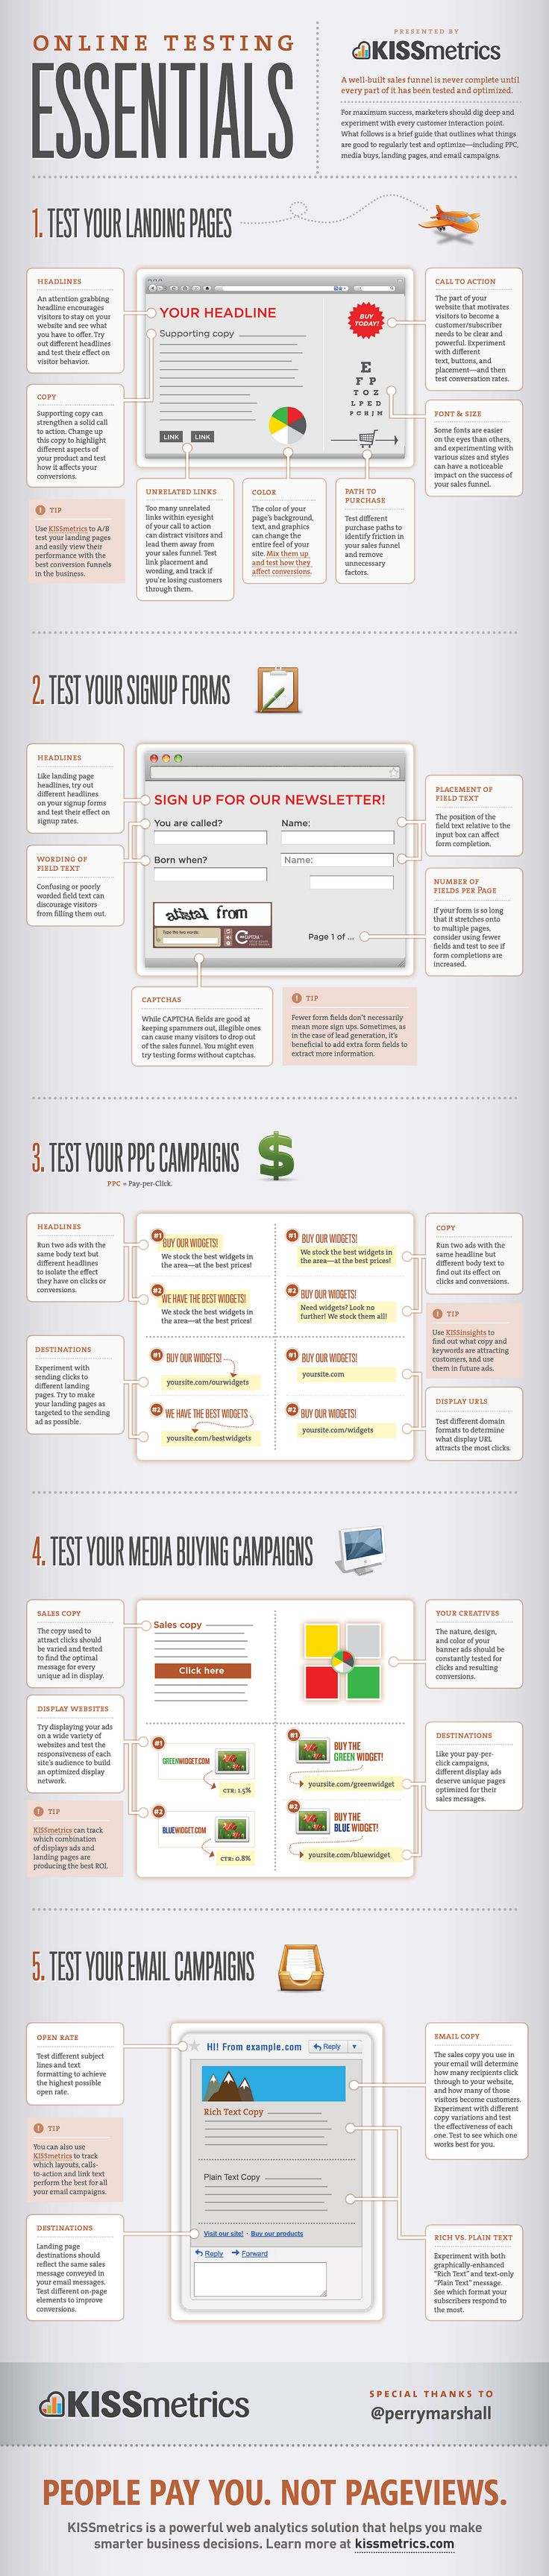 Online Marketing Testing Tips: High performance online marketing campaigns need deep thinking and monitoring. Kissmetrics denotes the 5 major and most common interactive channels you should regularly go over and experiment to get your prospects deep down the sales funnel.  > http://infographicsmania.com/online-marketing-testing-tips/